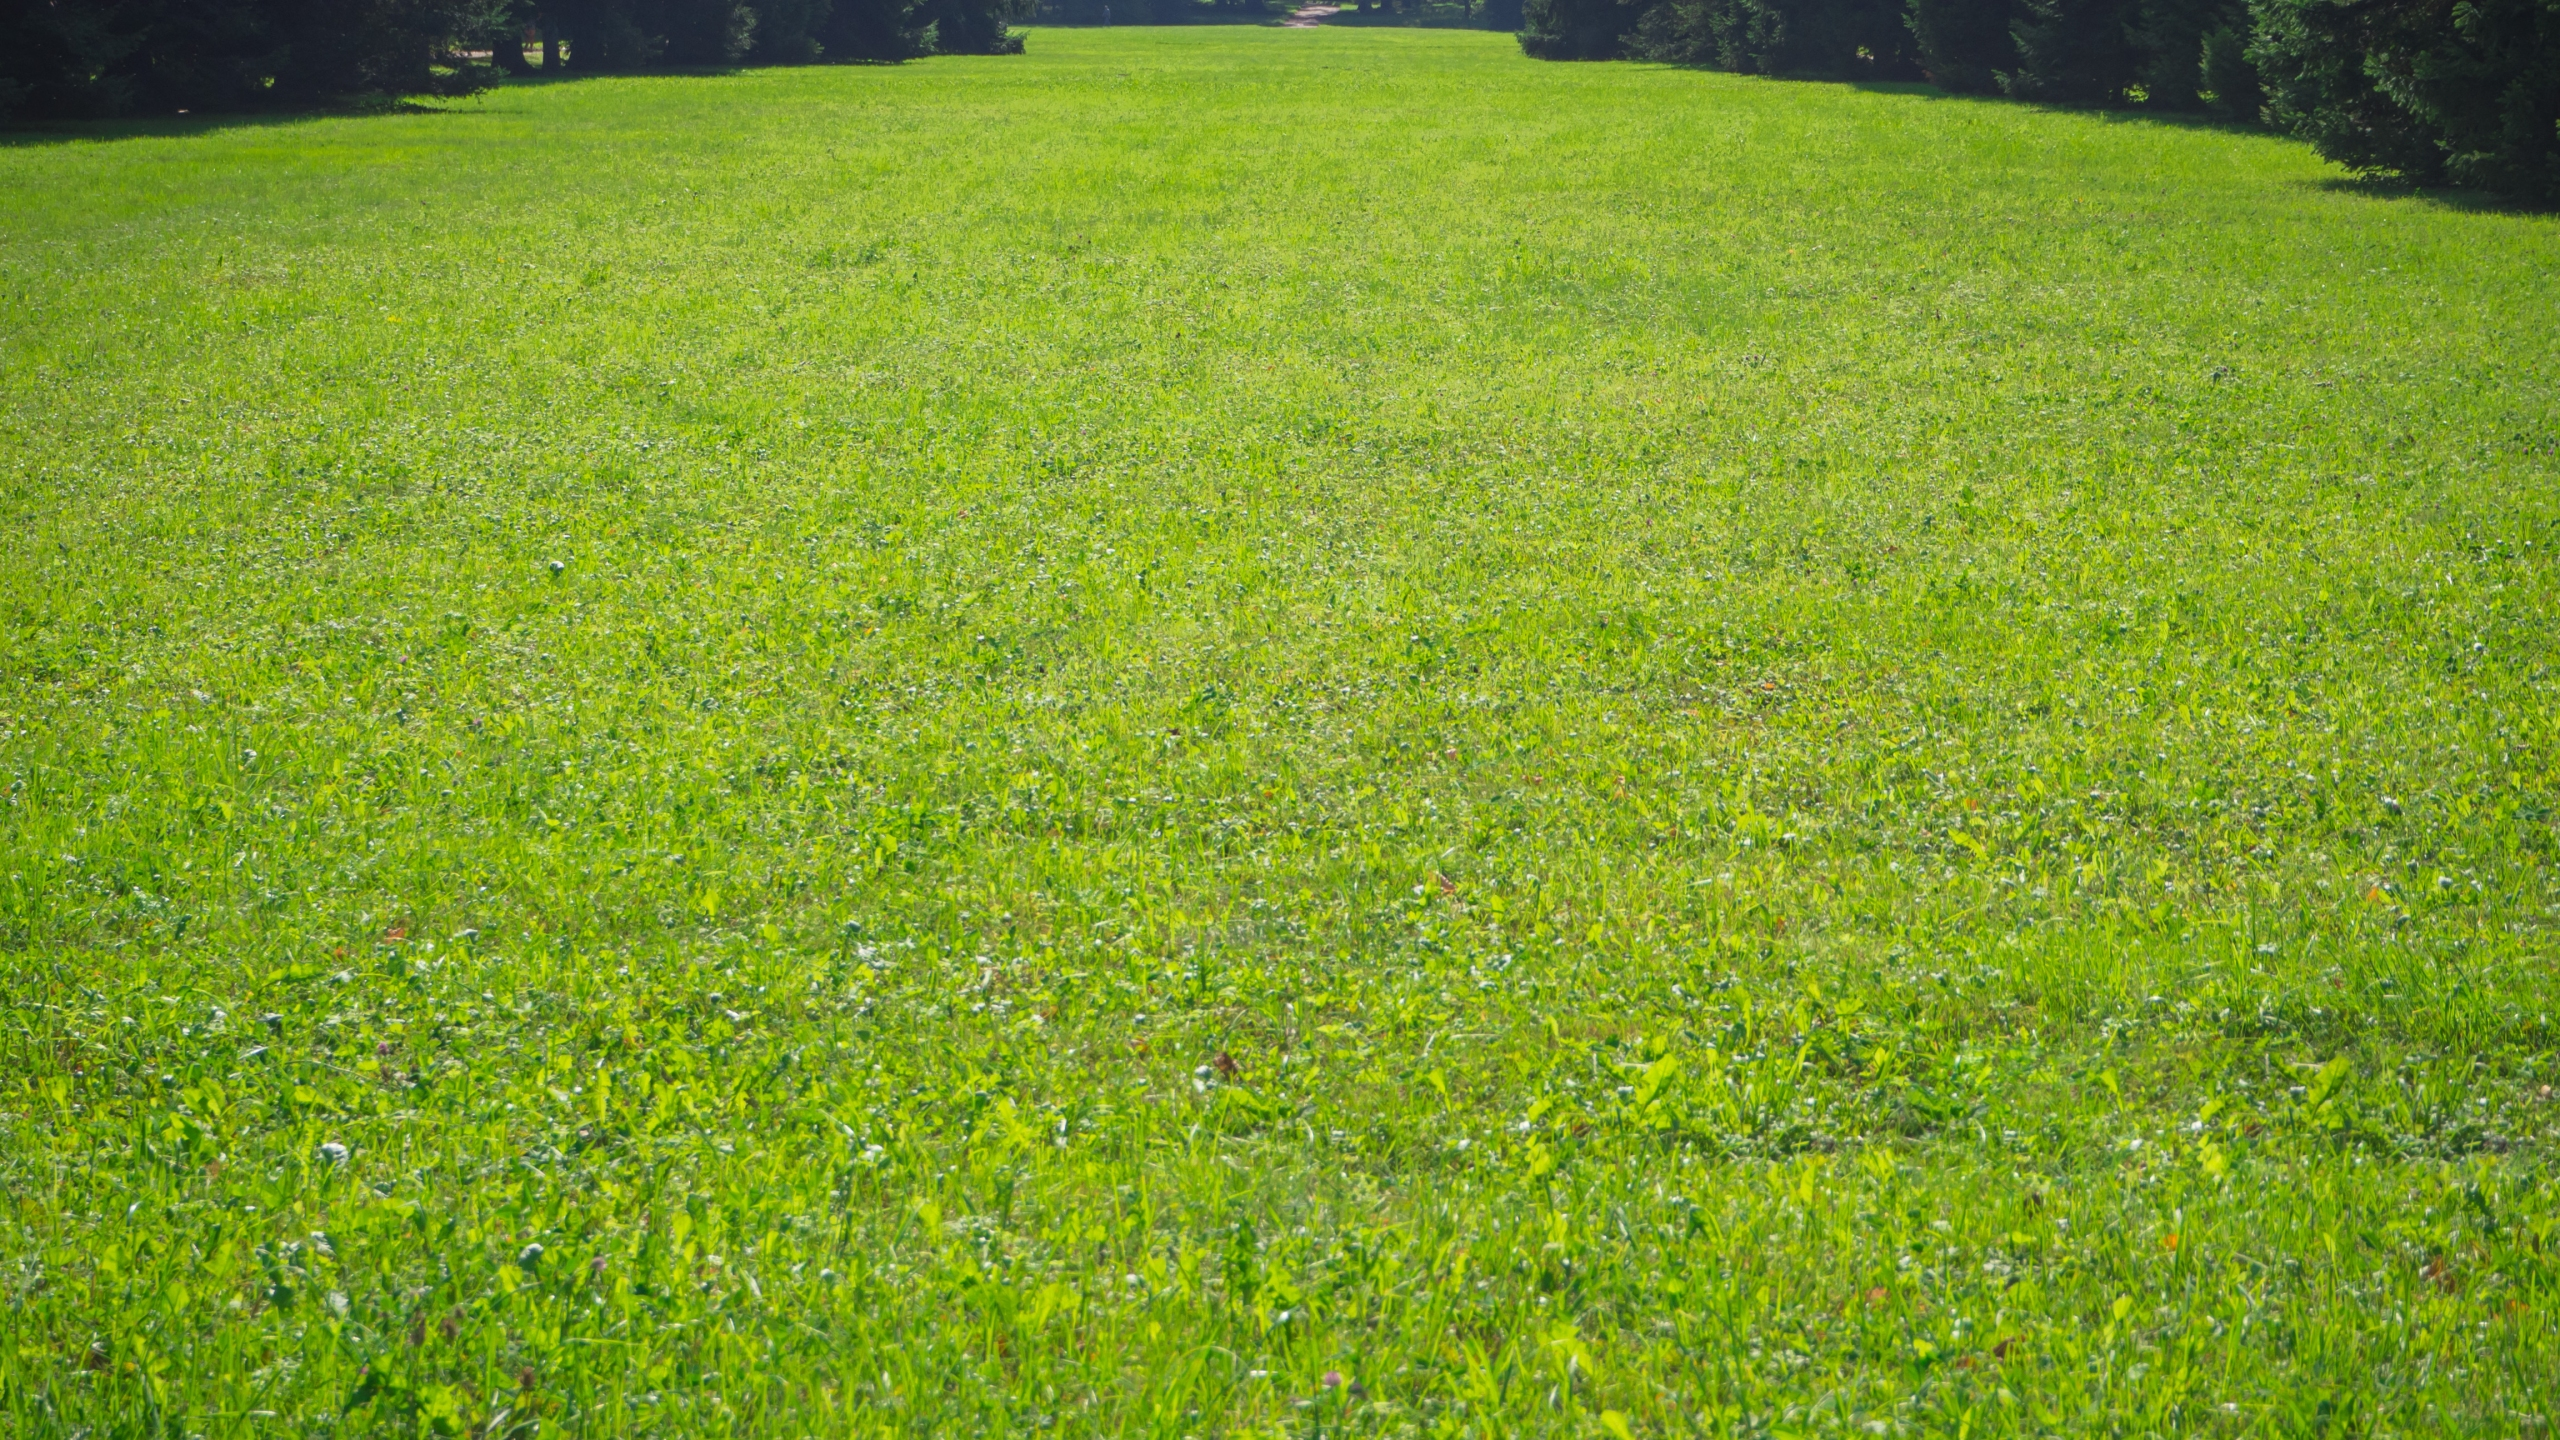 Green Lawn. Scenic View Of A Beautiful English Style Garden With_1541563198398